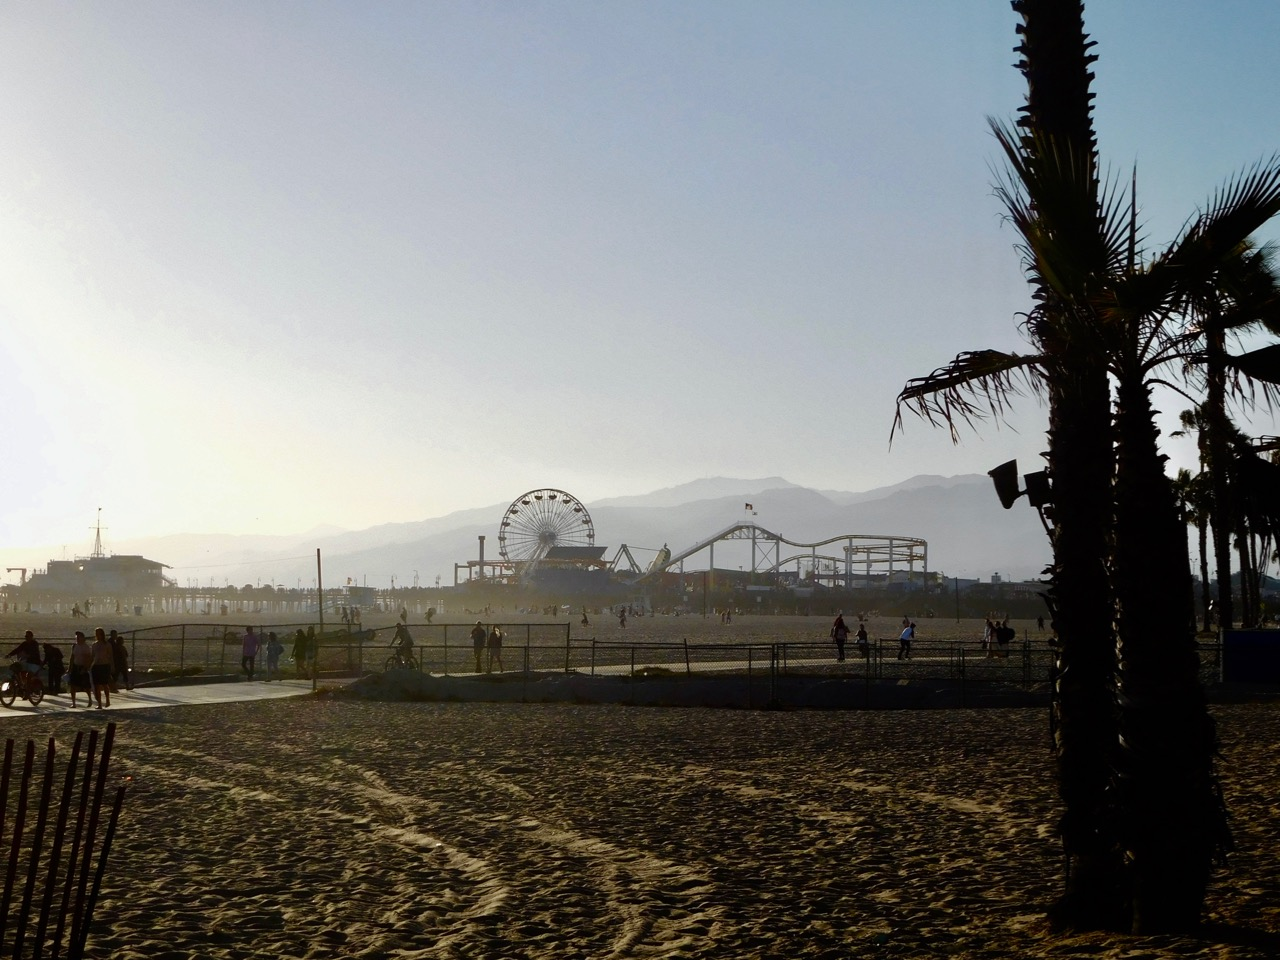 3 Days in L.A. - Venice Beach (2)